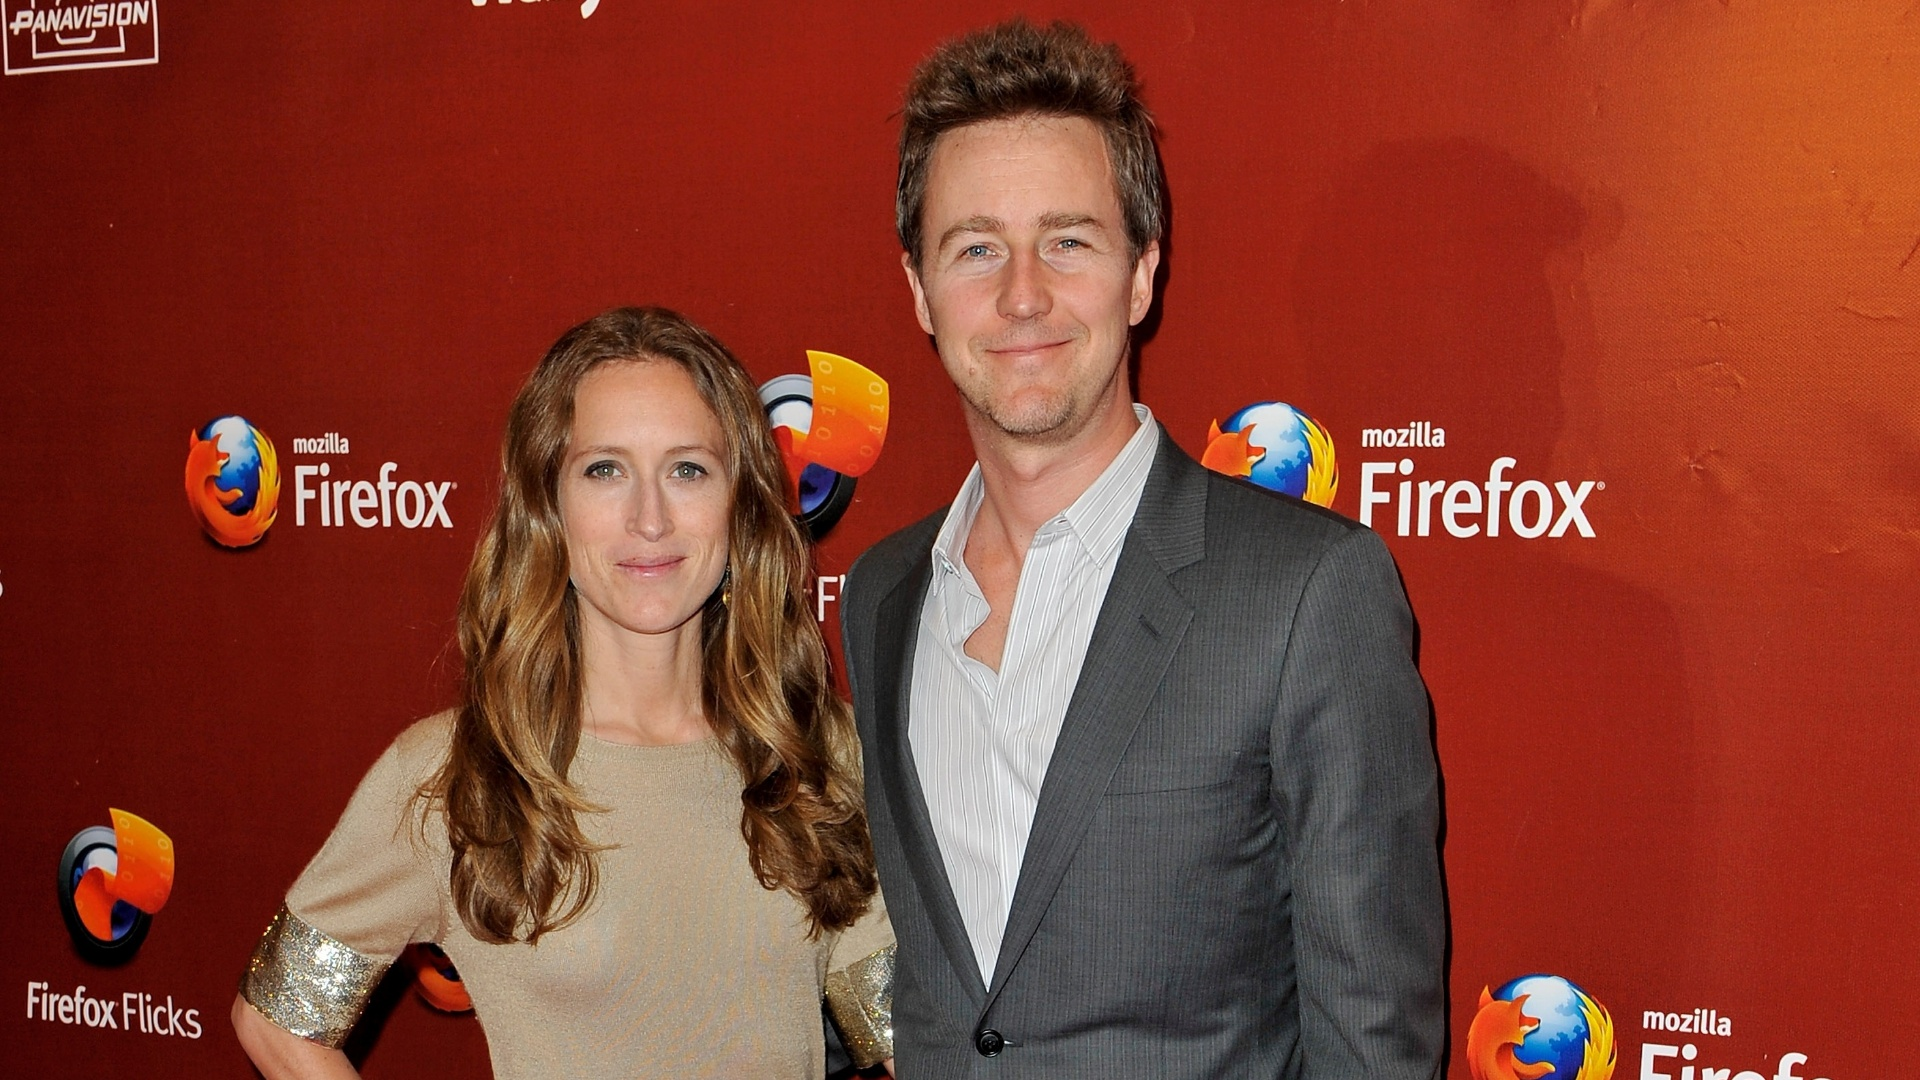 17.mai.2012 - O ator Edward Norton e a produtora Shauna Robertson na premiao Firefox Flicks em Cannes